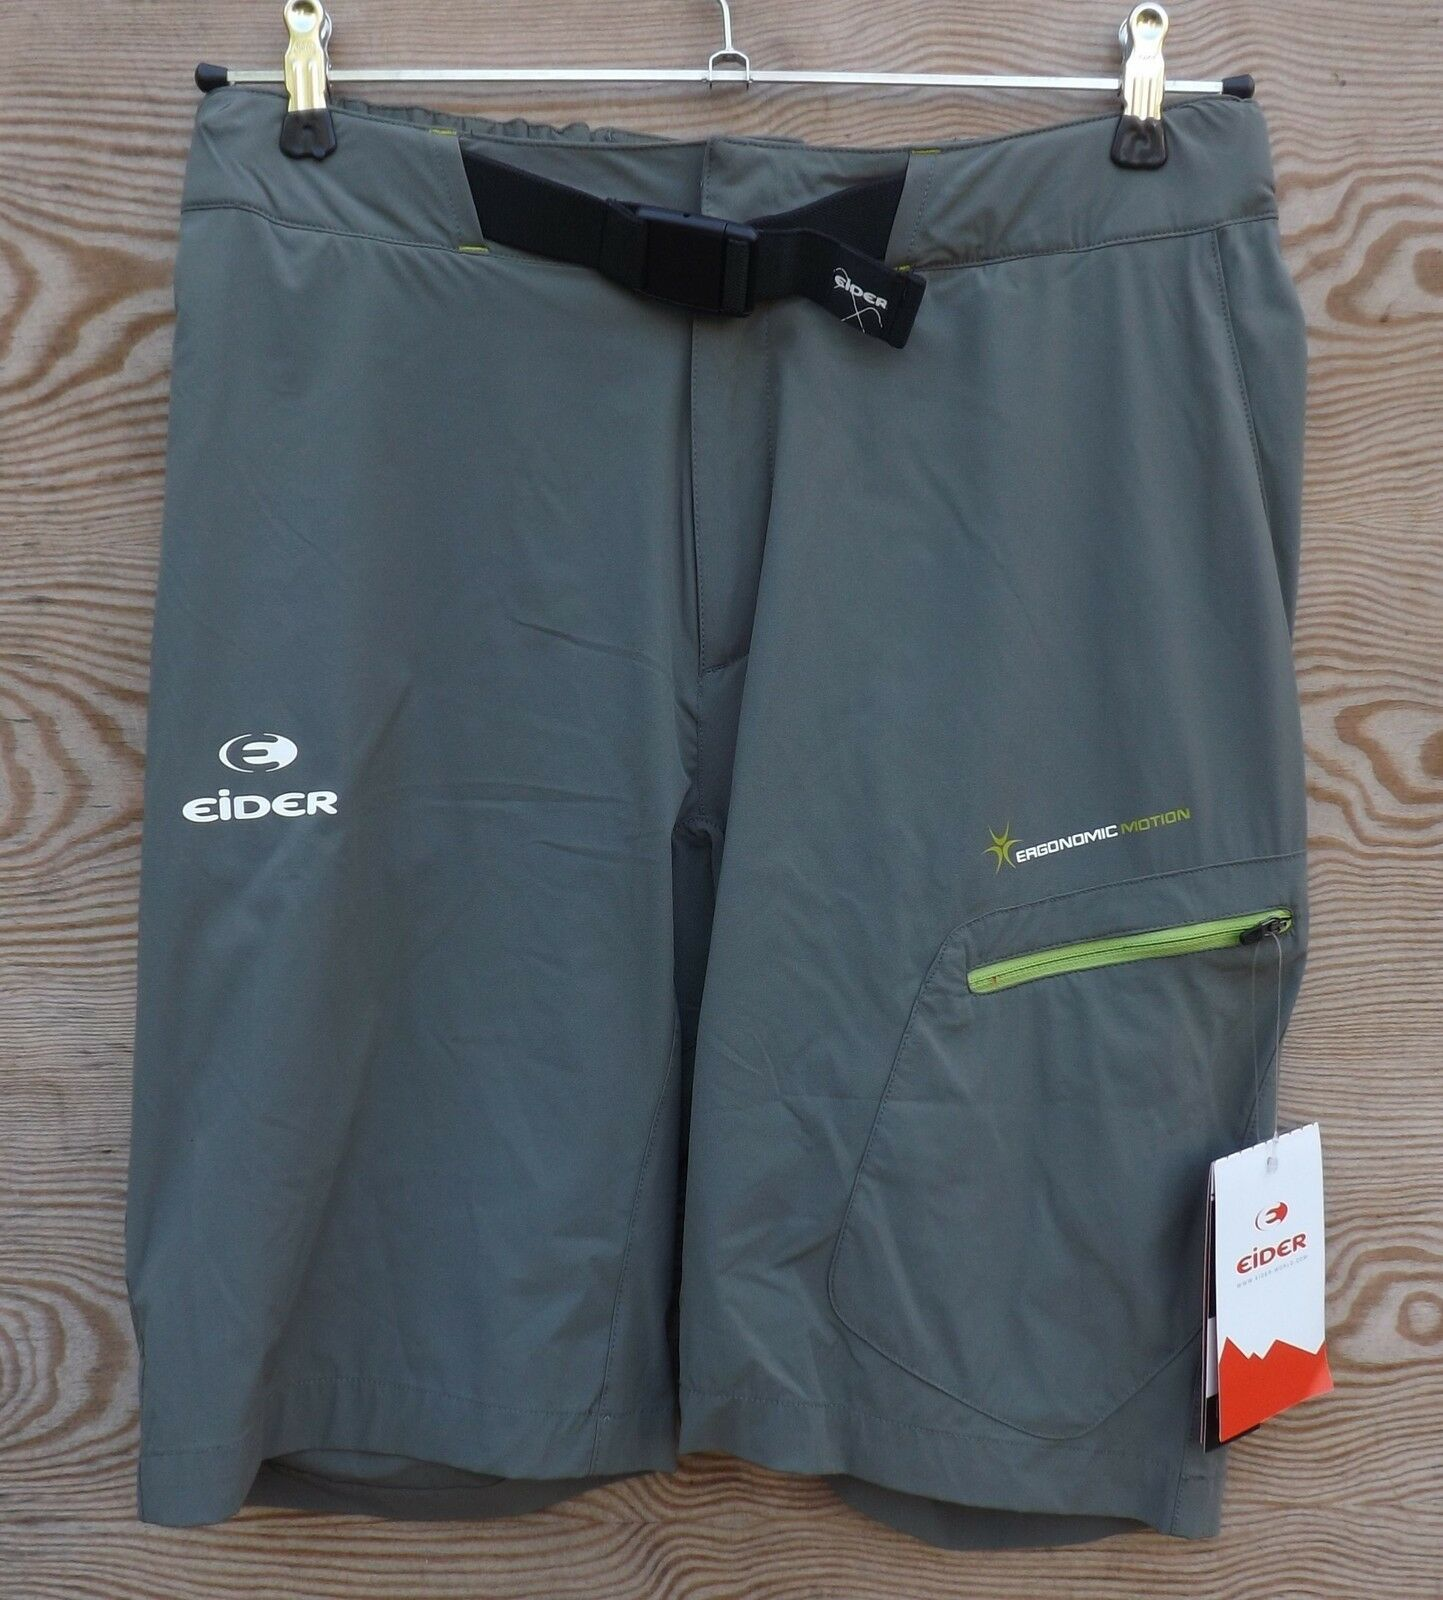 Eider thakali Short Men, Lightweight, elastic shorts for Men   all in high quality and low price